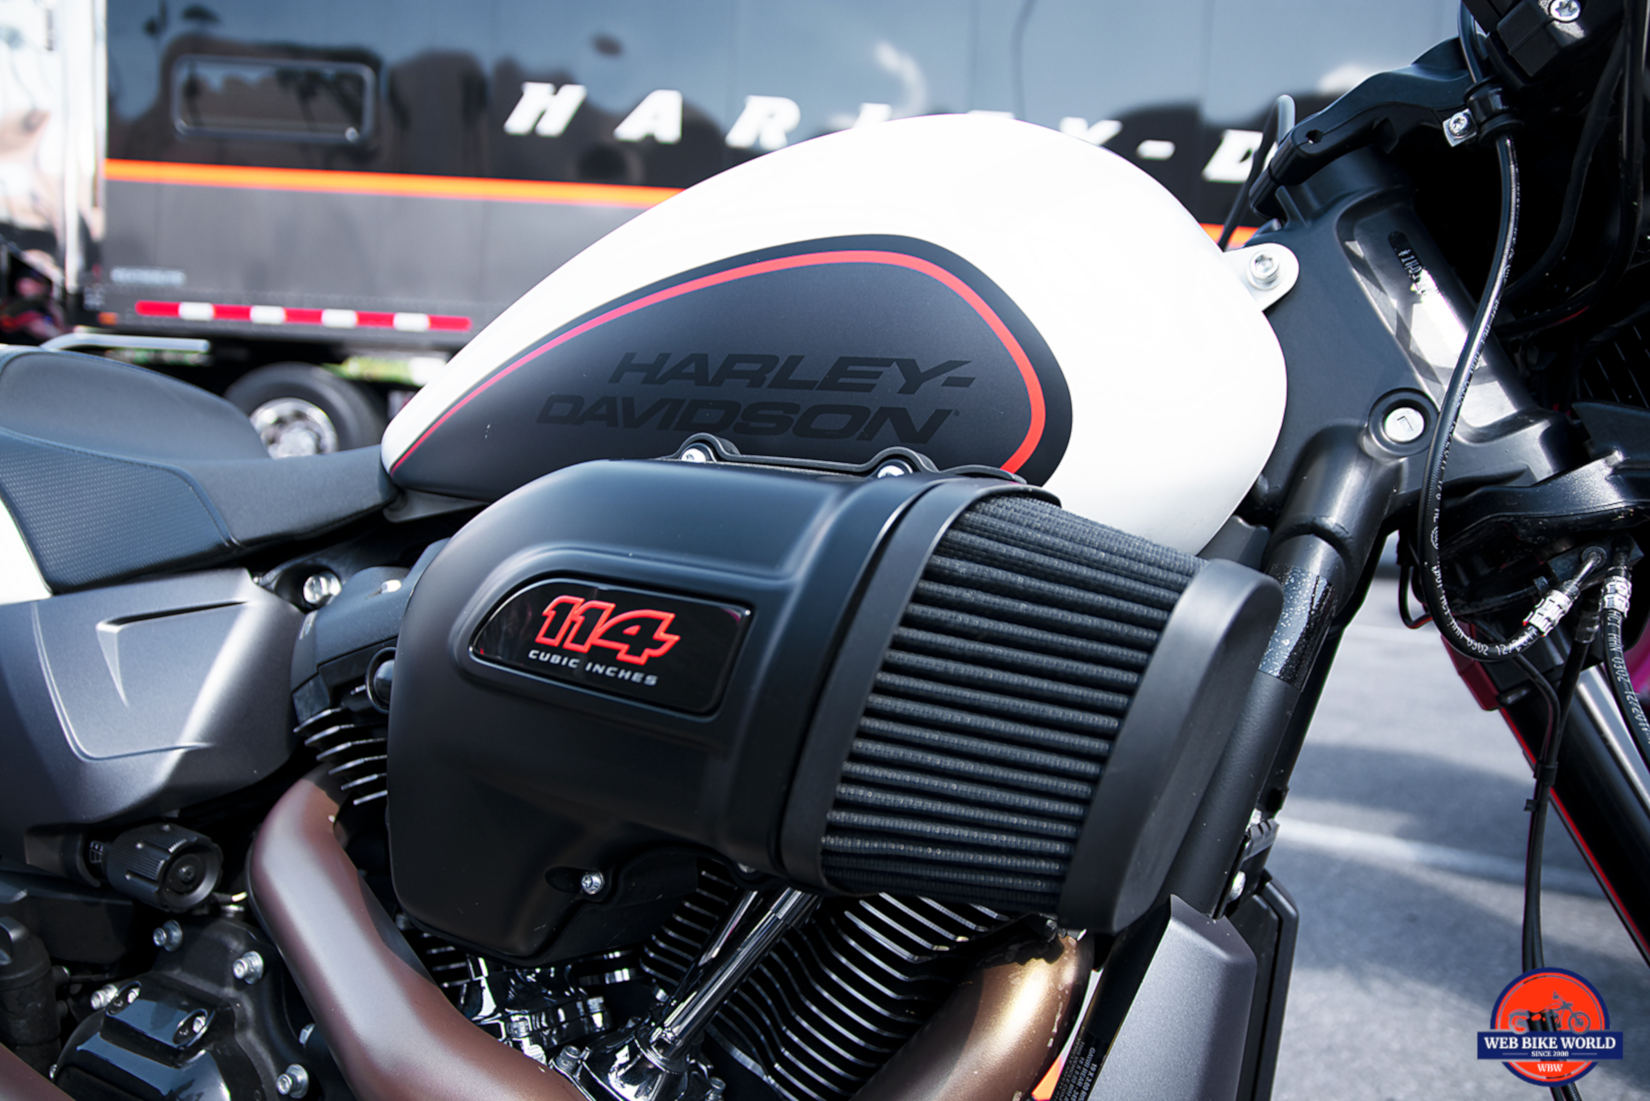 Air intake on the 2019 Harley Davidson FXDR.